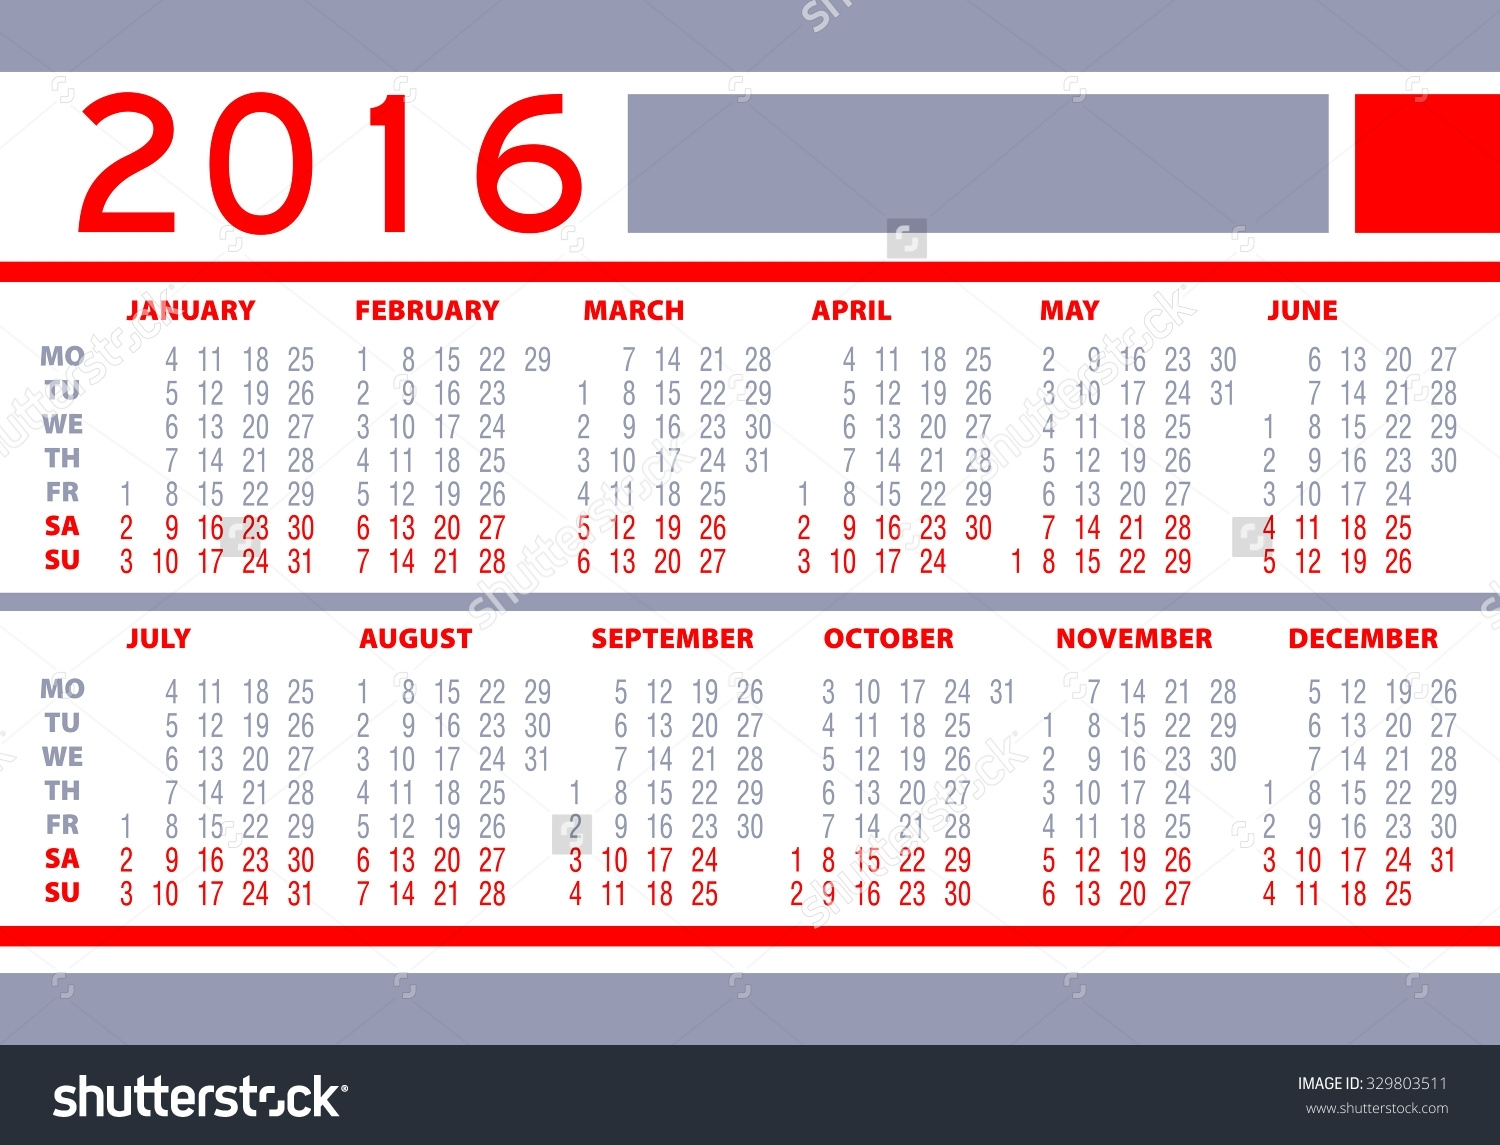 Weeks Of The Year 2016 | Sitedesignco